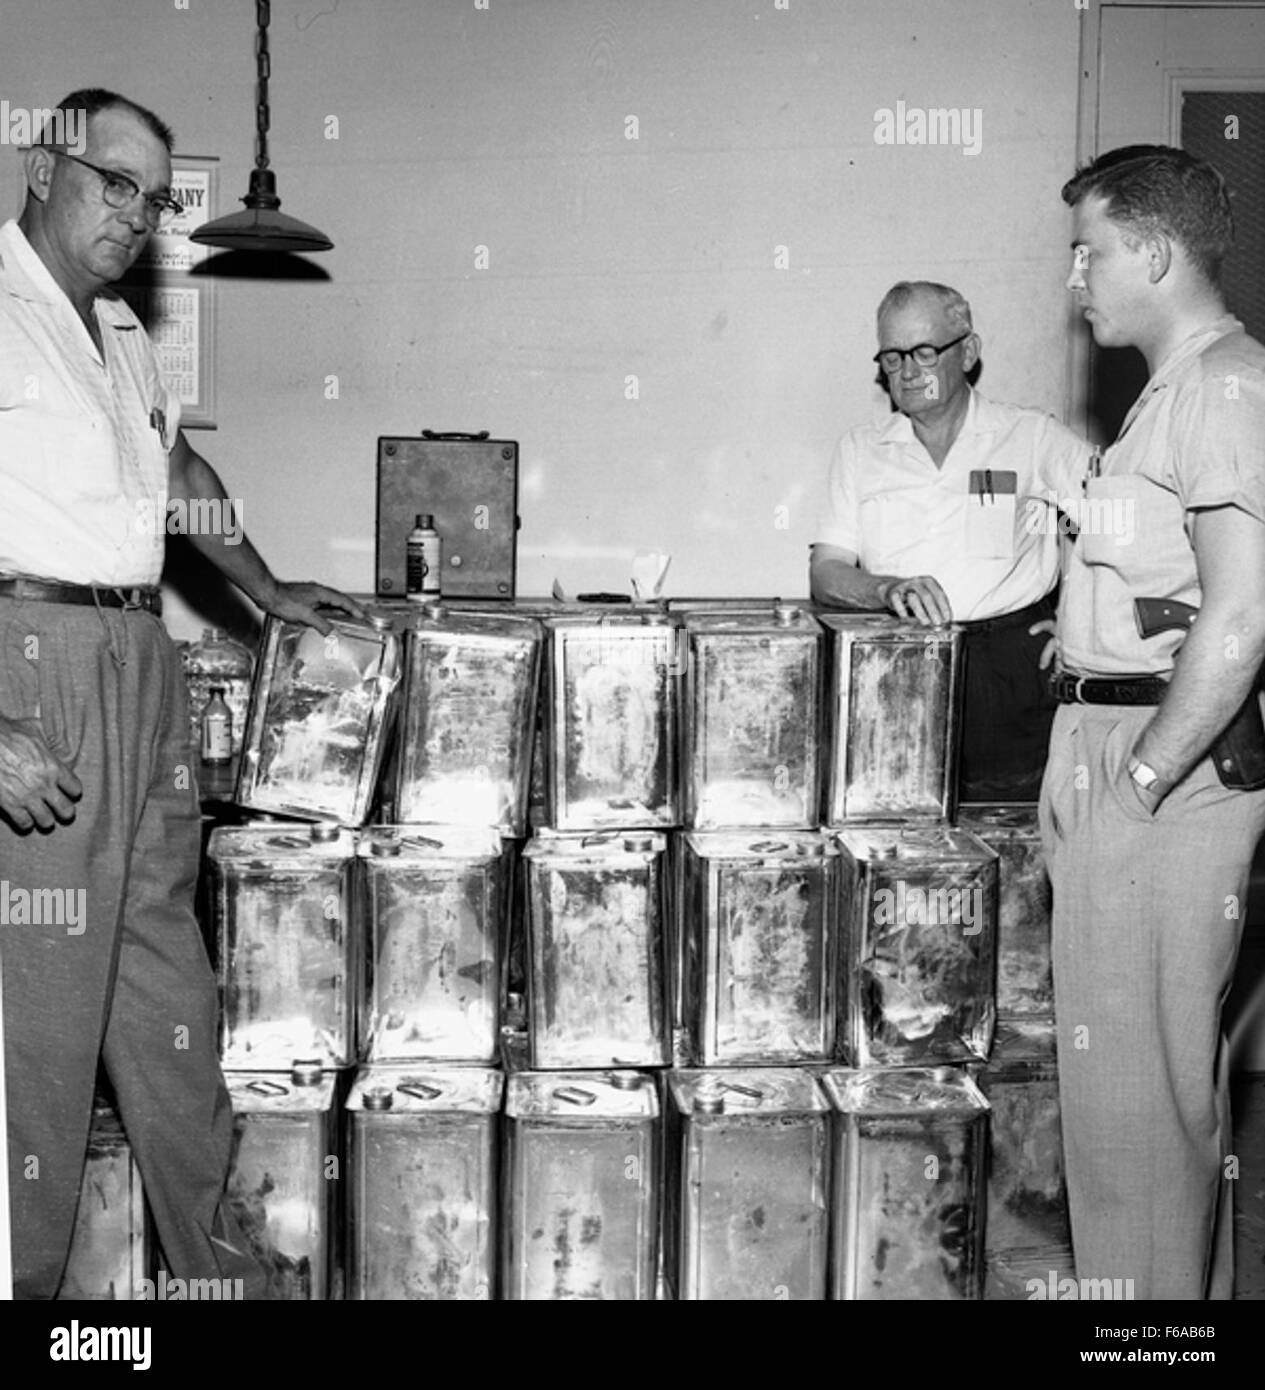 Law enforcement officers with moonshine seized during a raid, Tallahassee - Stock Image